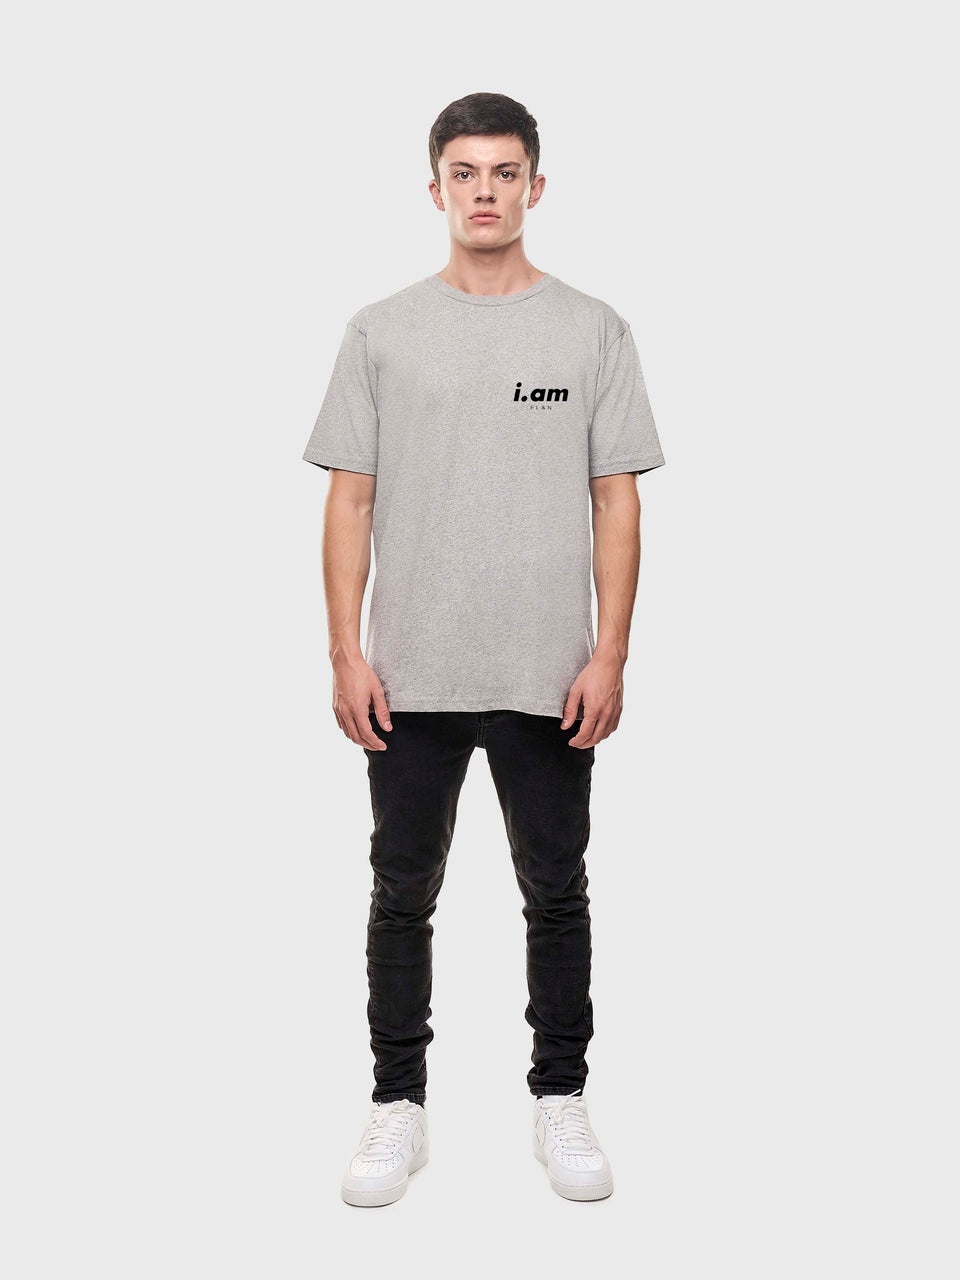 Made in London - Grey - Unisex T